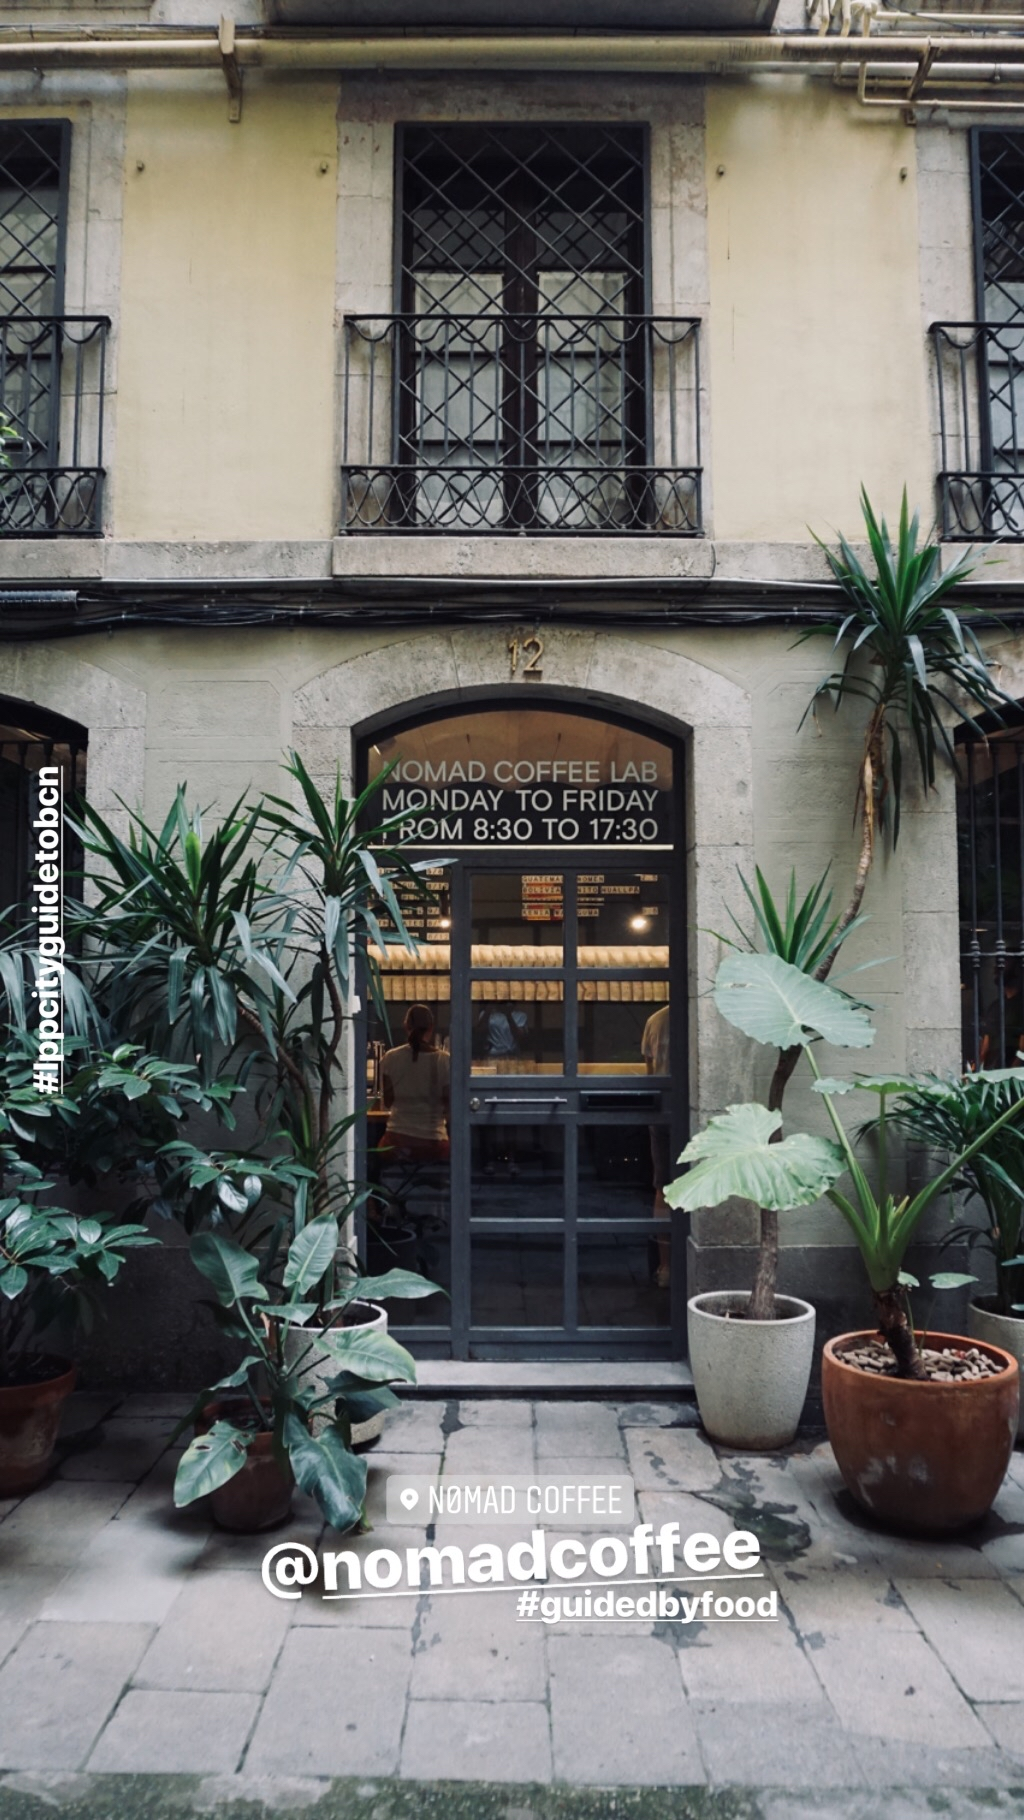 NOMAD-COFFEE-BARCELONA-GUIDED-BY-FOOD-BARBARAJACOPS.jpg